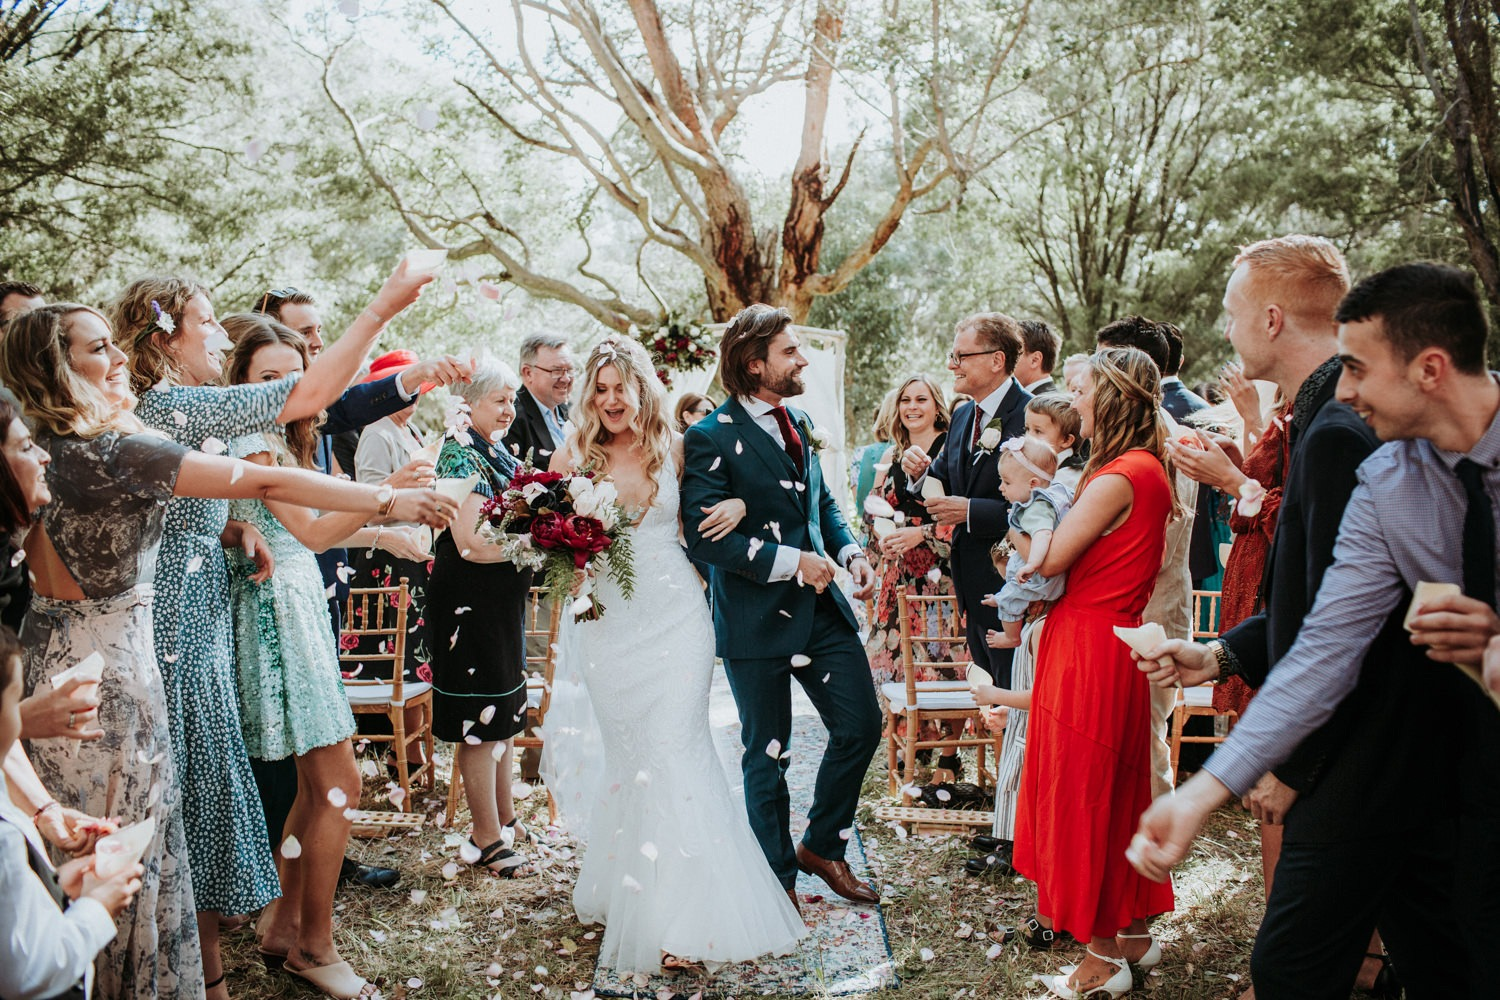 Couple exiting the aisle with rose petals thrown at them